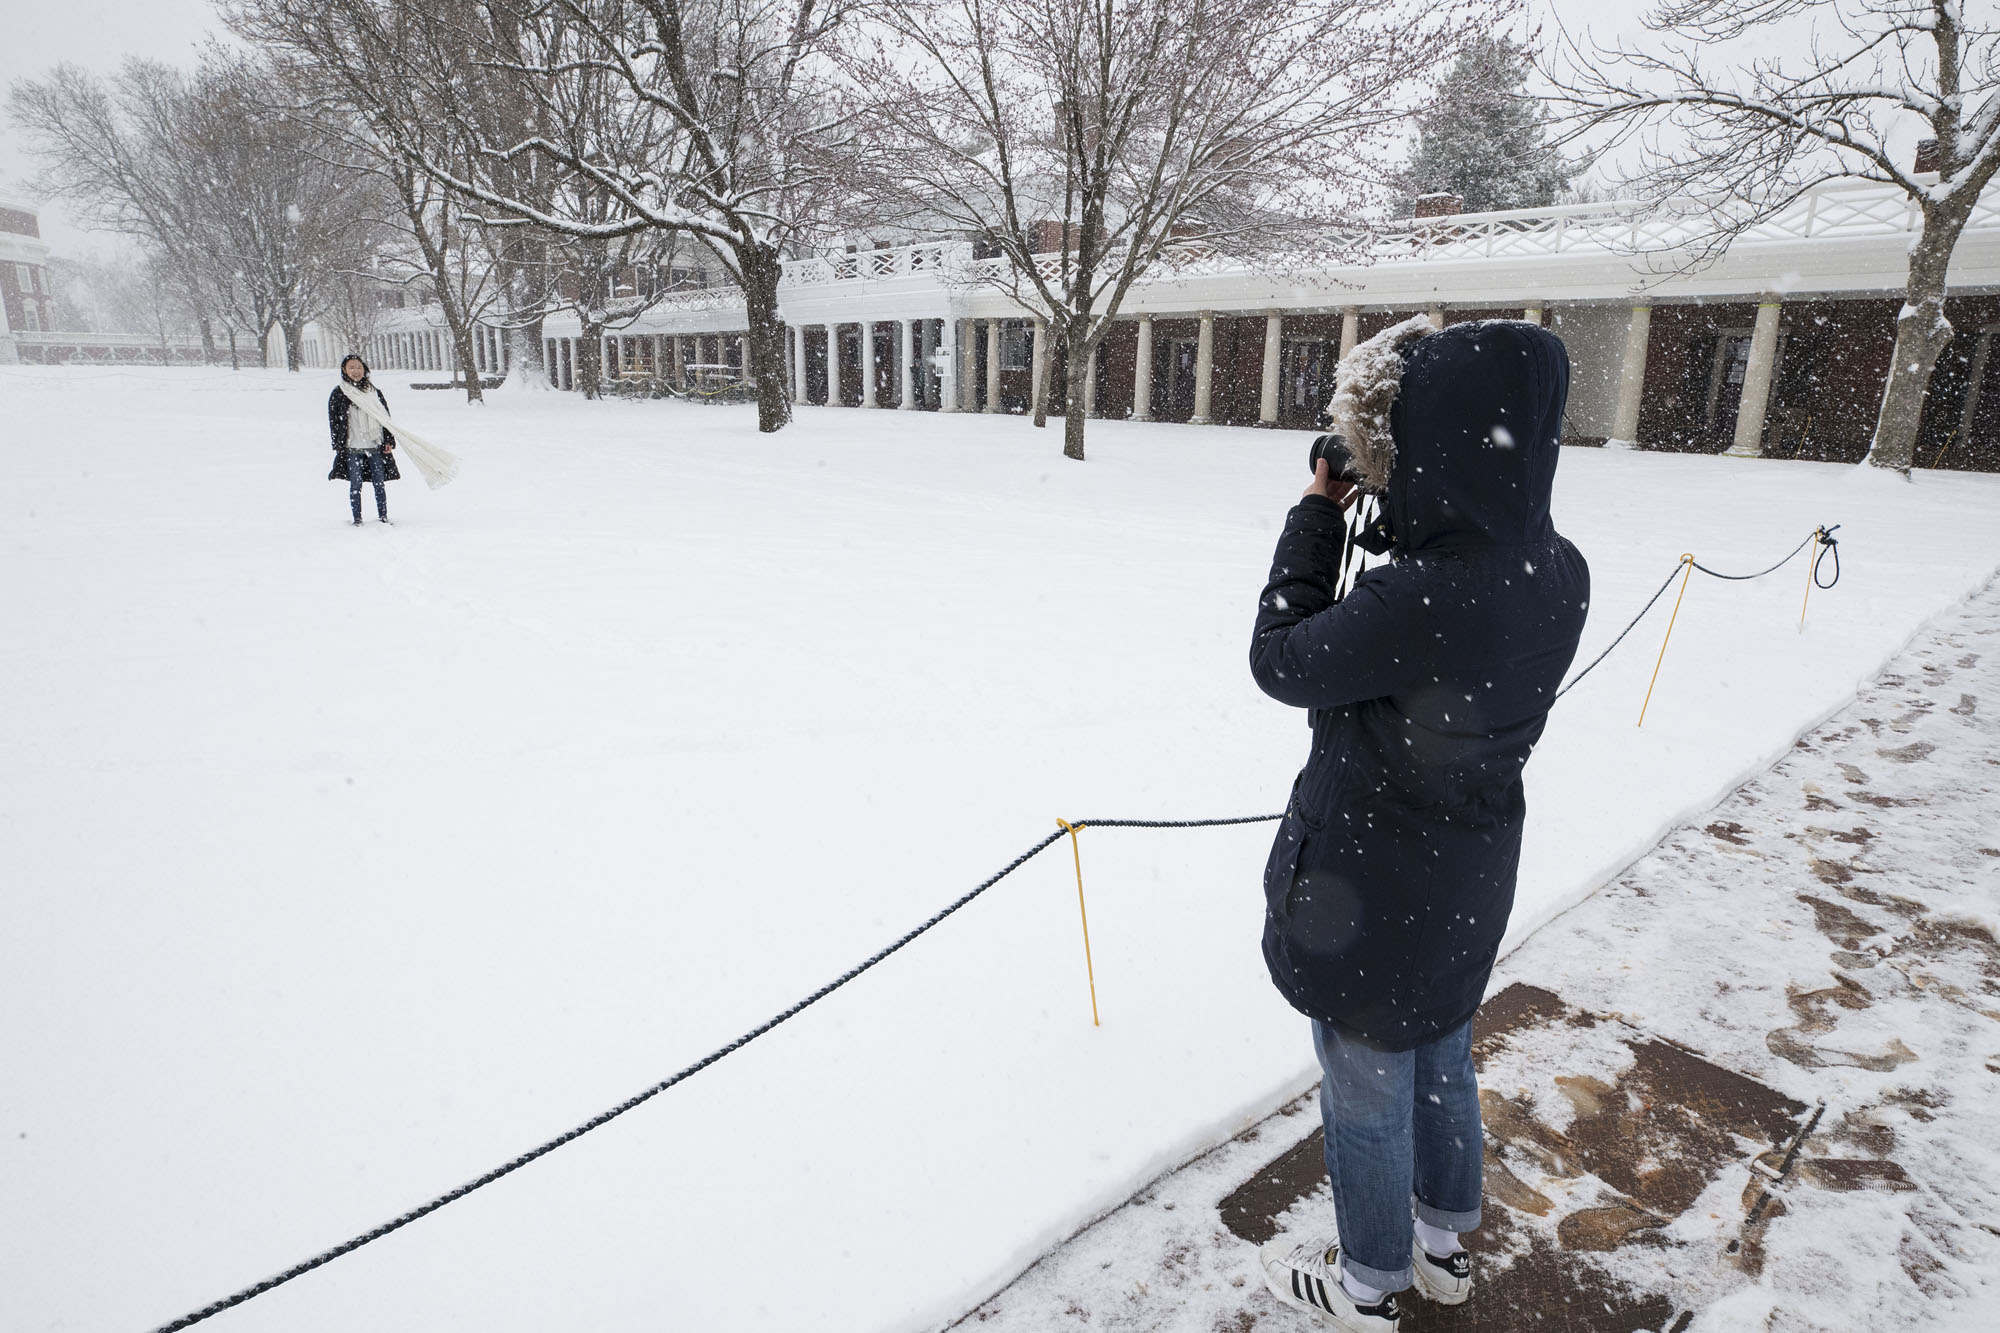 Student taking a picture on Grounds